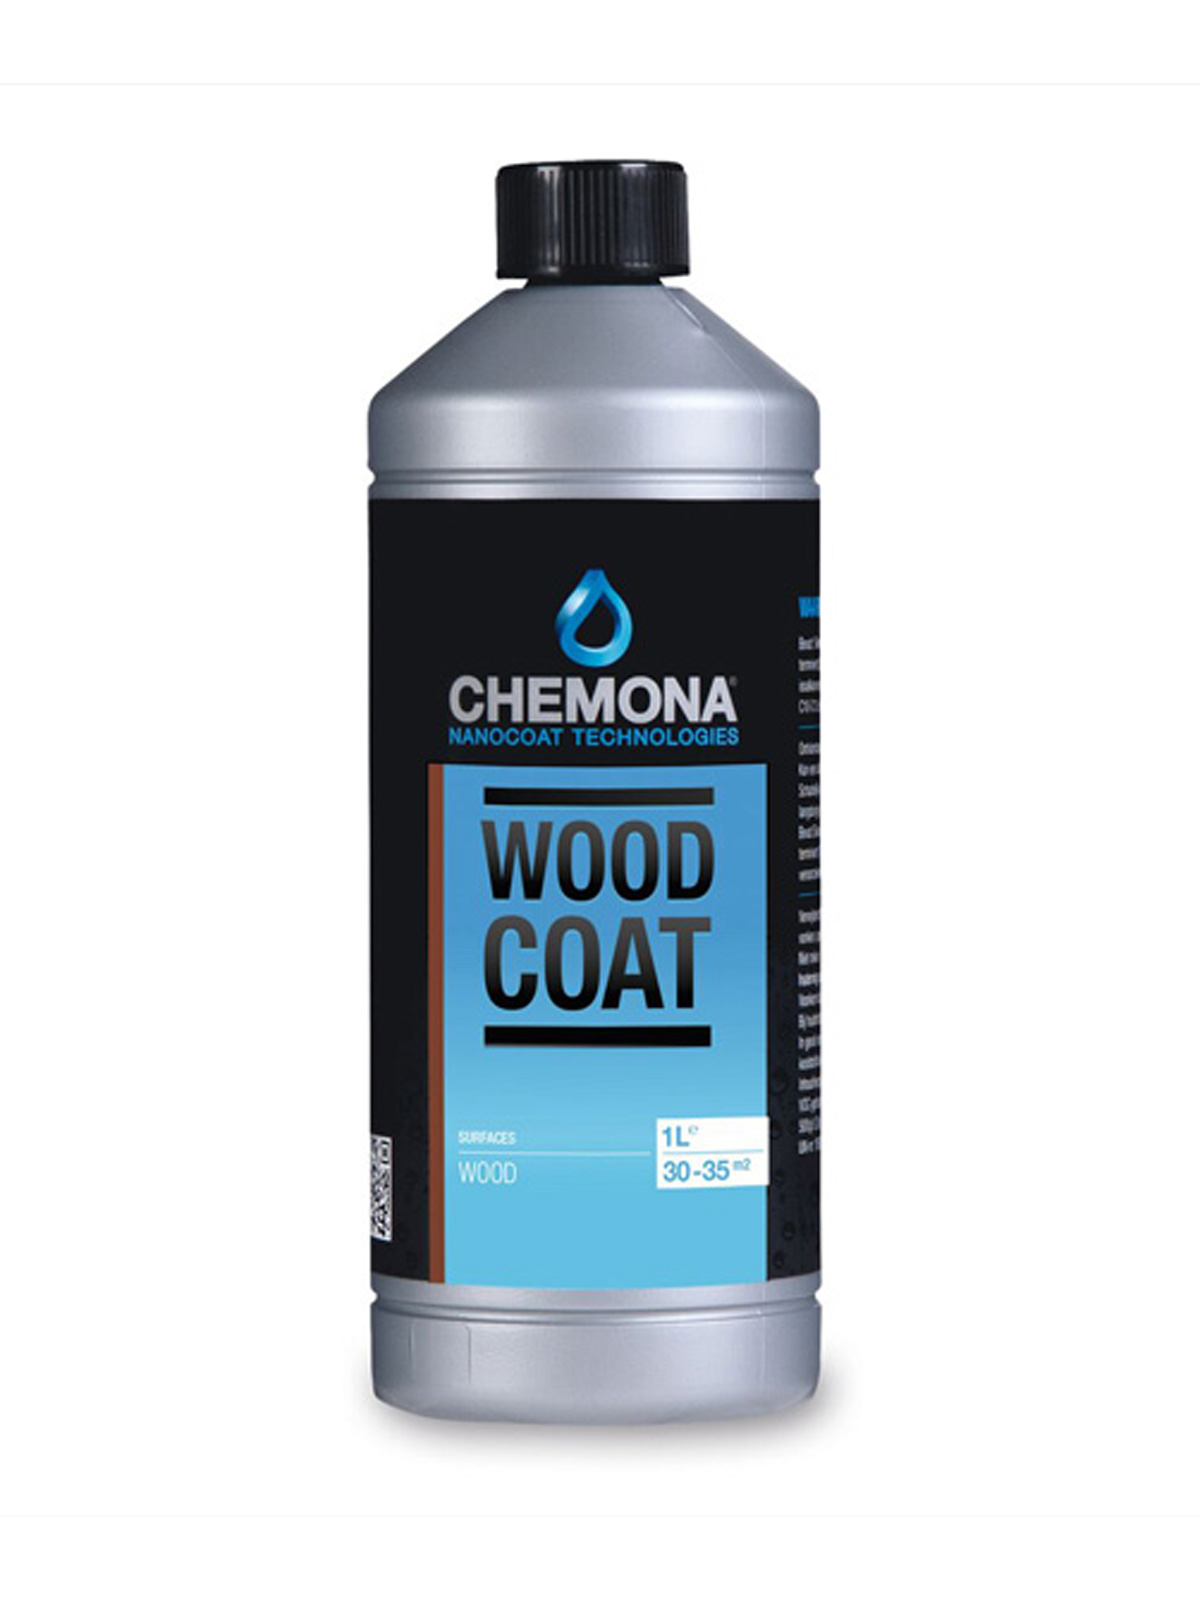 Chemona Wood Coat